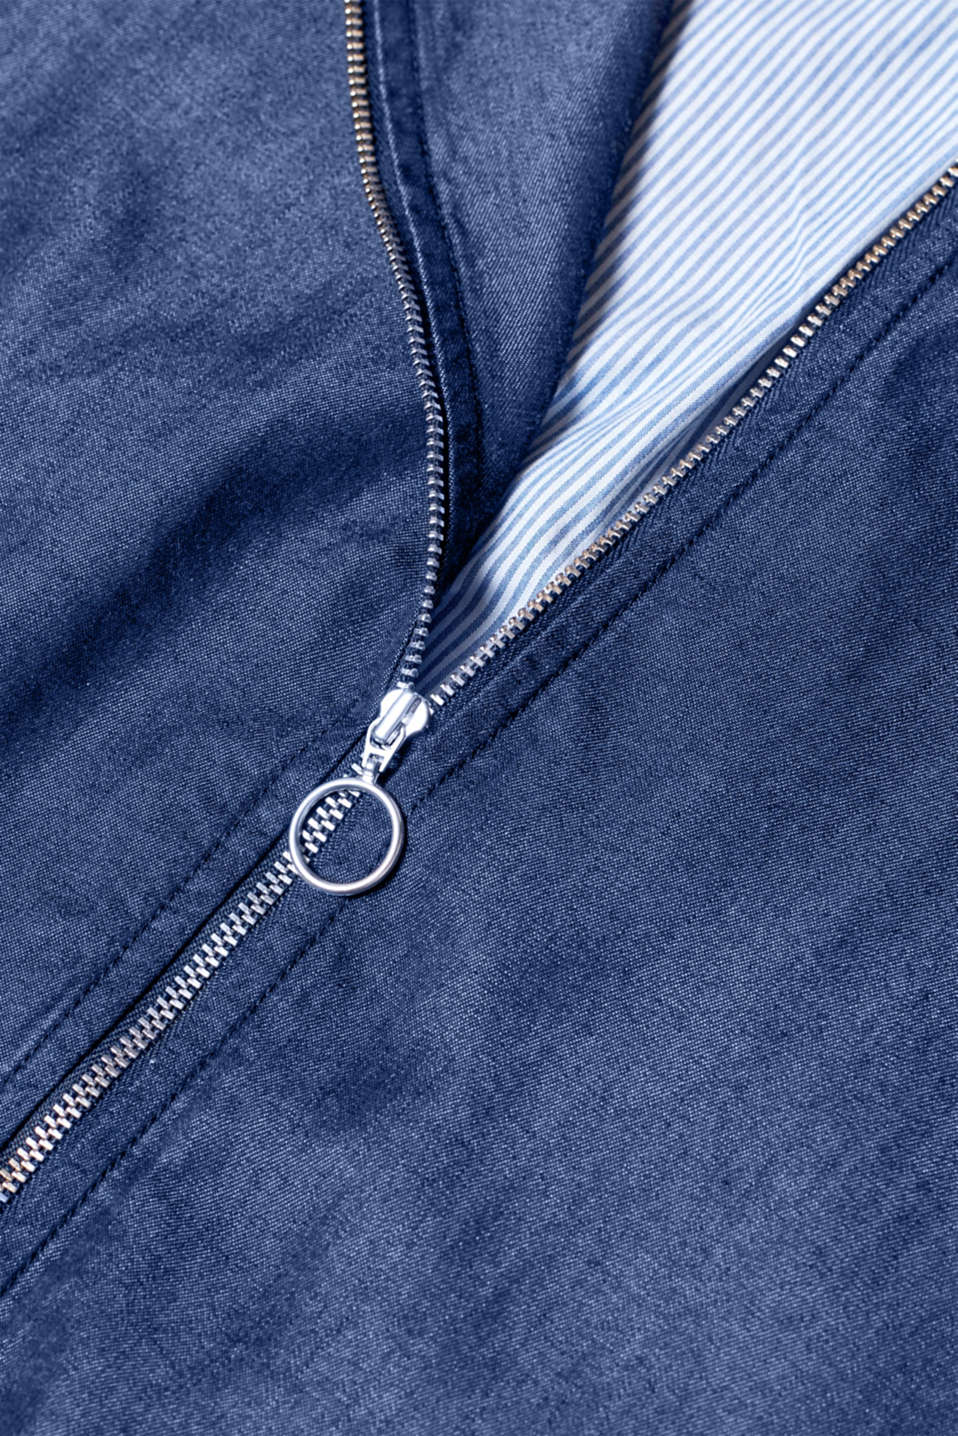 Jackets indoor denim, BLUE RINSE, detail image number 4